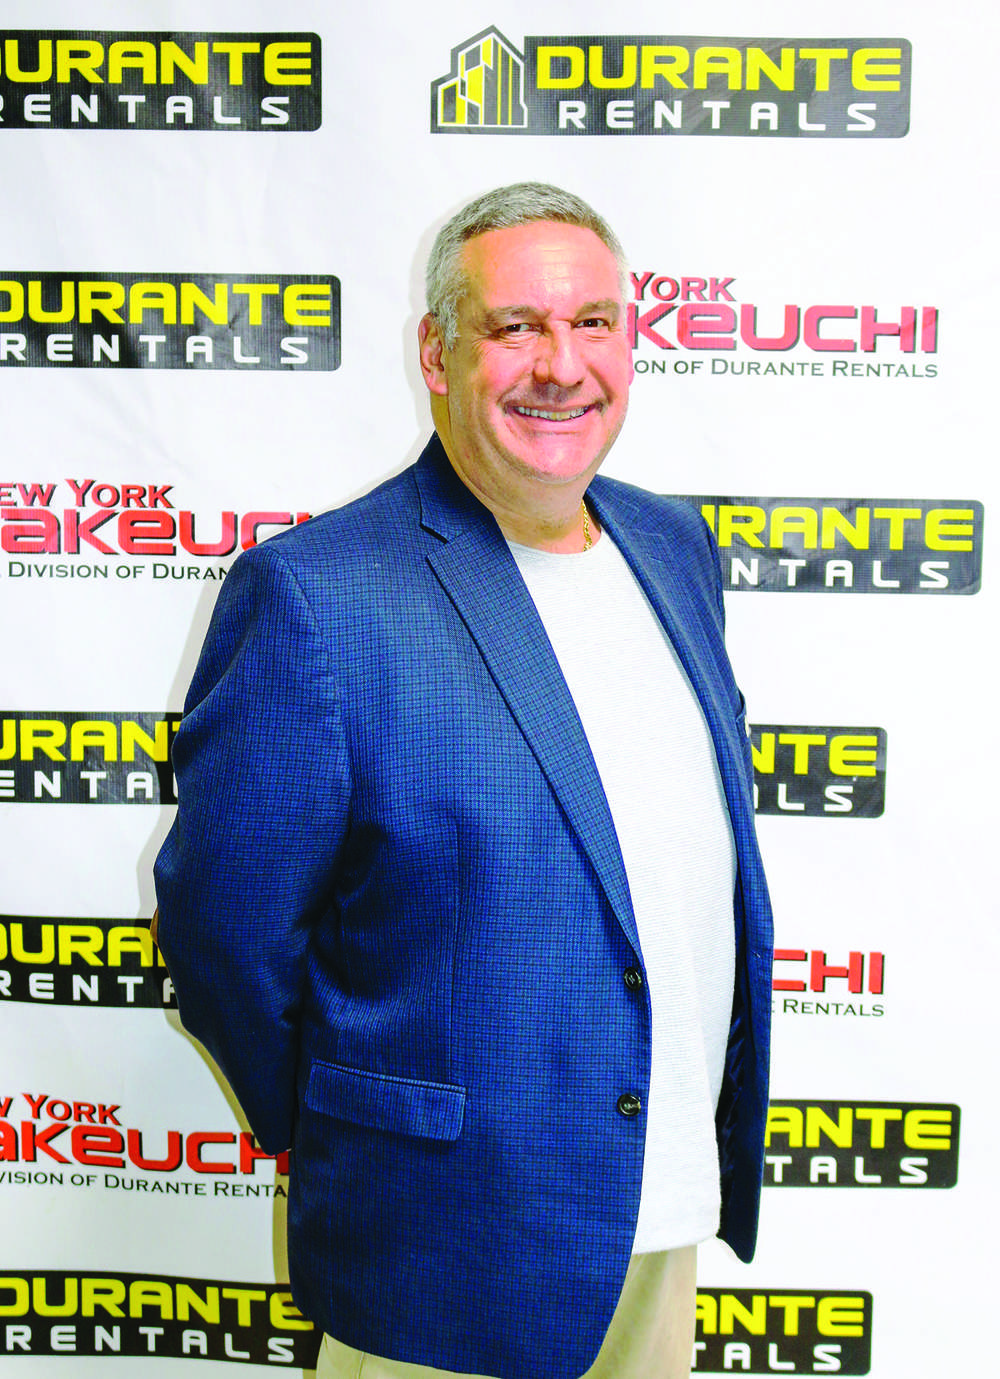 Mitch Garfinkel has been hired to a senior sales position with Durante Rentals. He will be instrumental in expanding Durante's new and used sales divisions, as well Durante Rentals future stages of expansion.